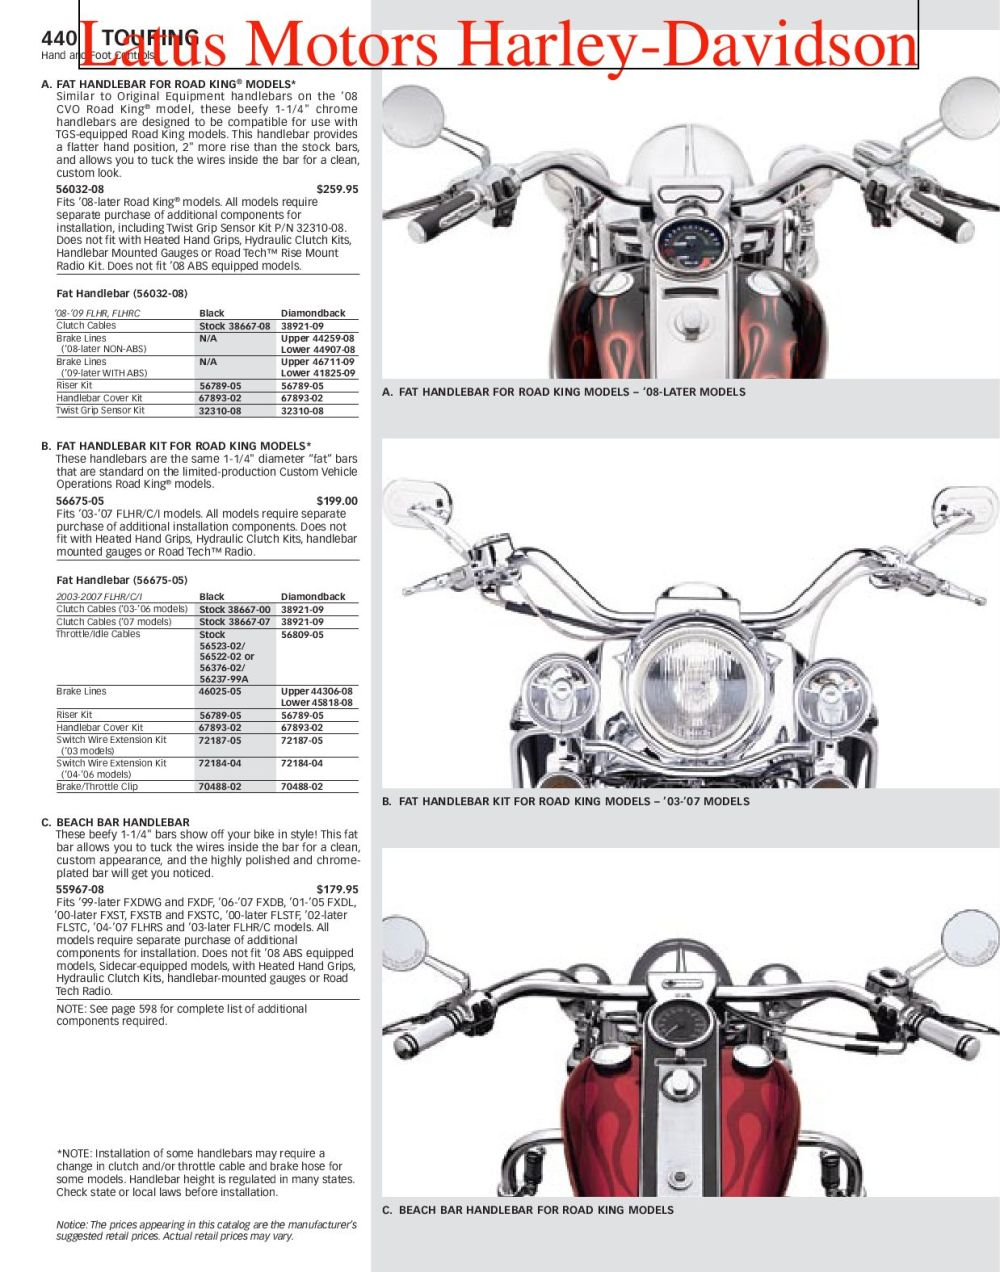 medium resolution of harley davidson touring parts and accessories catalog by harley rh issuu com cj5 clutch diagram throw out bearing diagram